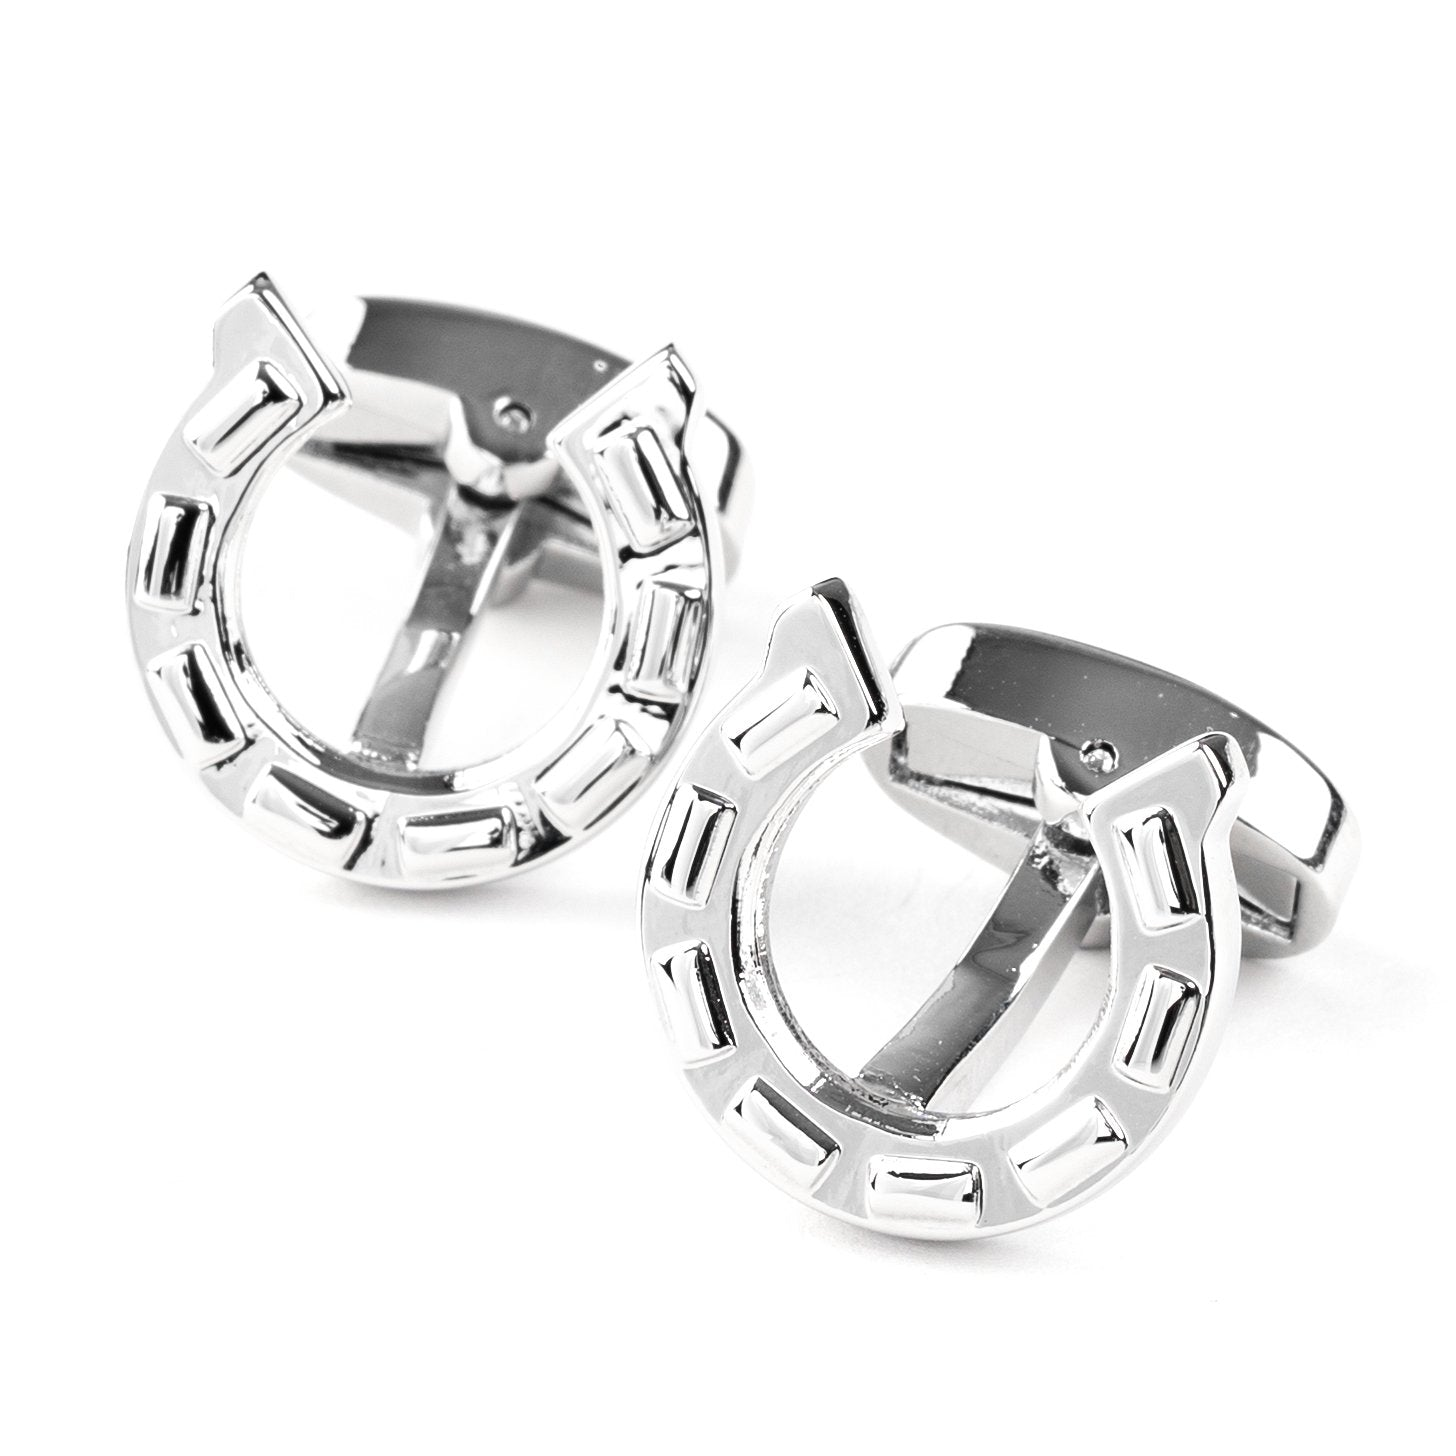 Silver Horseshoe Cufflinks, Novelty Cufflinks, Cuffed.com.au, CL6310, Animals, Gambling, Horses, Clinks Australia